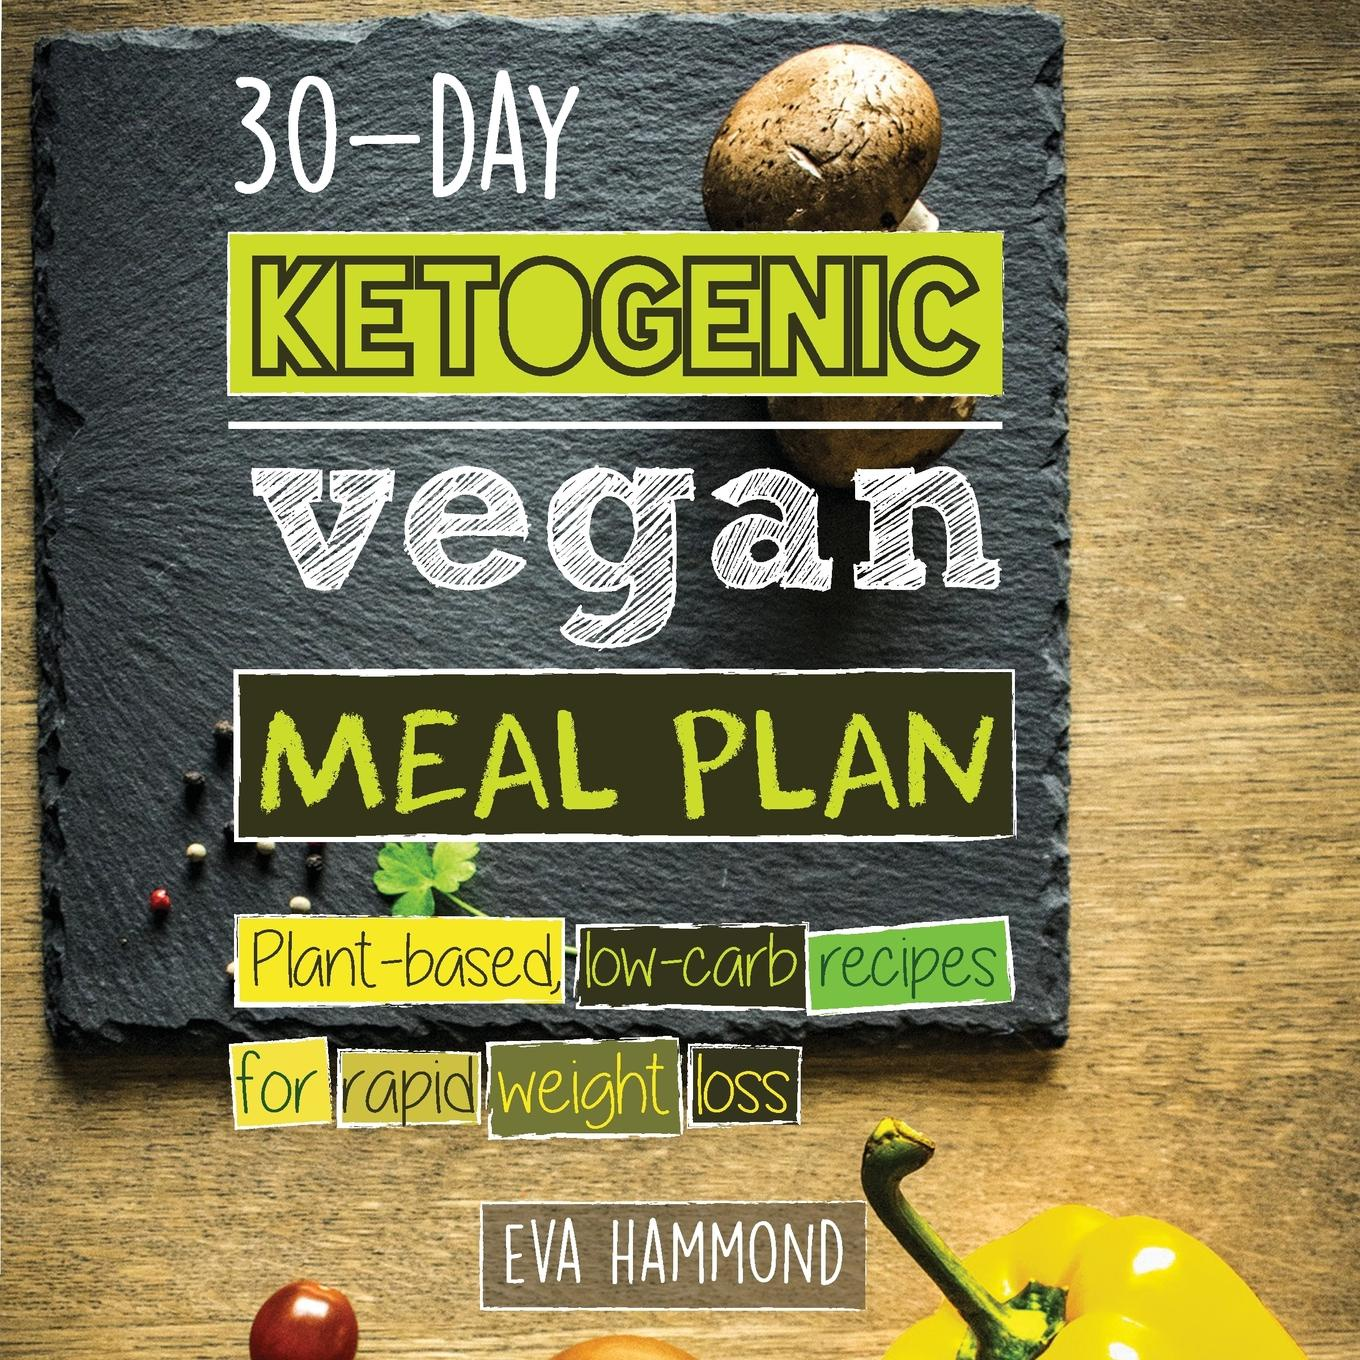 Eva Hammond 30-Day Ketogenic Vegan Meal Plan. Plant Based Low Carb Recipes for Rapid Weight Loss body massager weight loss fat burning with 5 headers relax spin tone slimming lose weight burn fat full body massage device